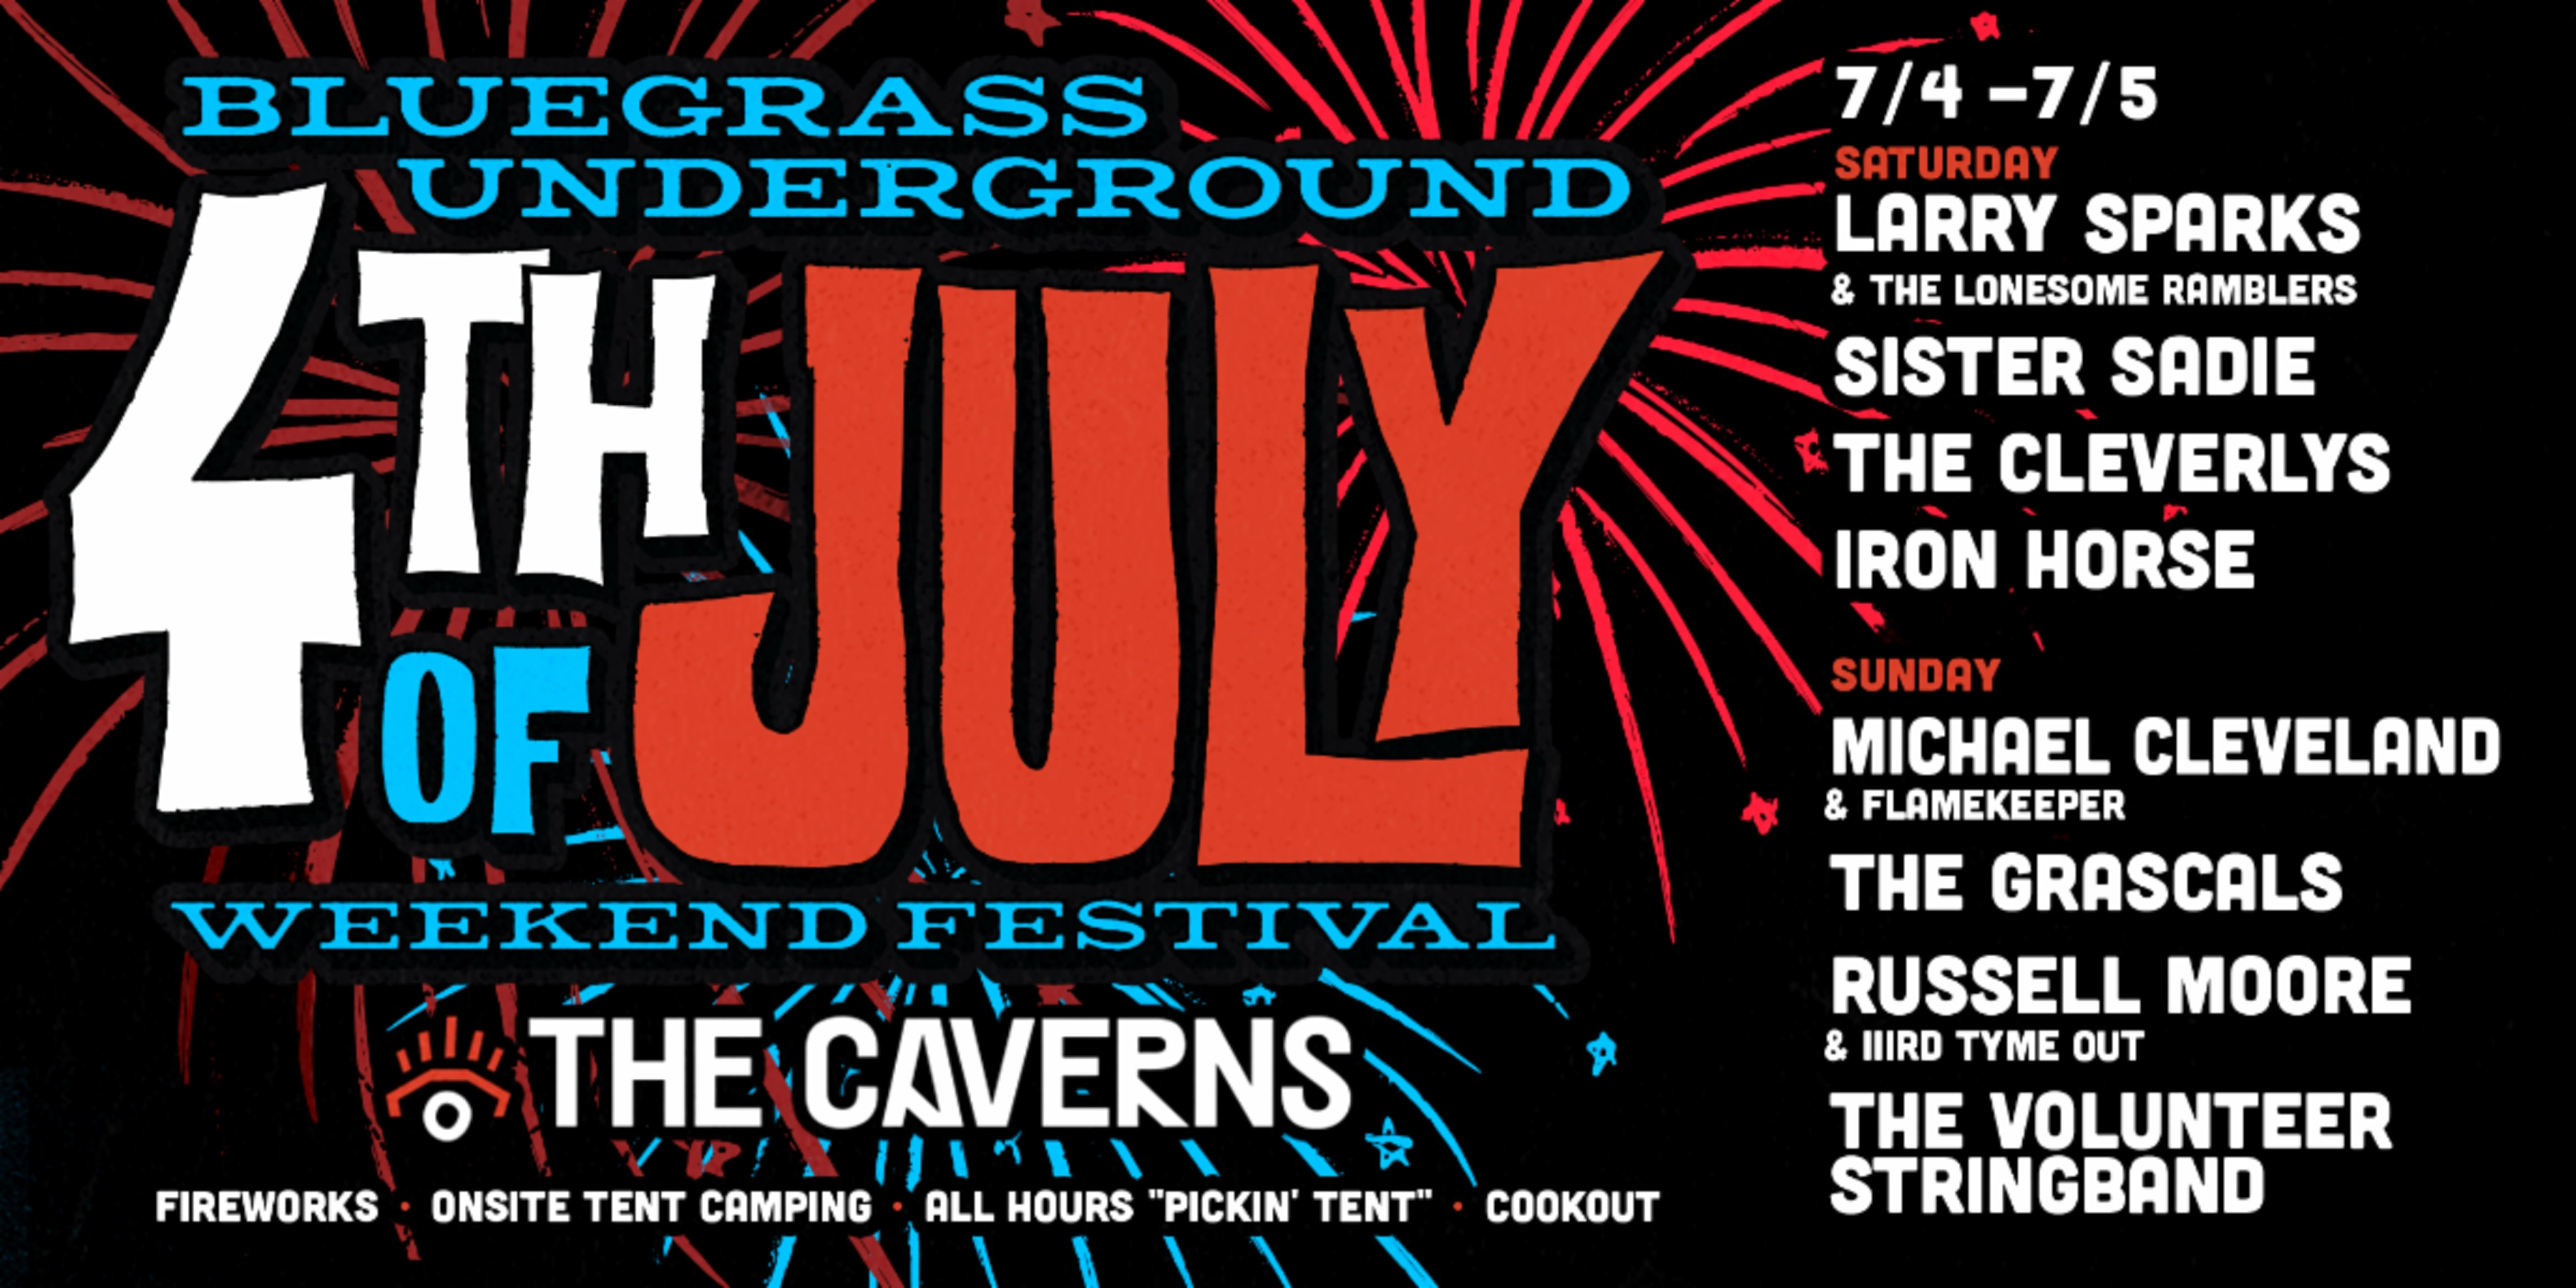 New Bluegrass Festival coming to The Caverns July 4th Weekend